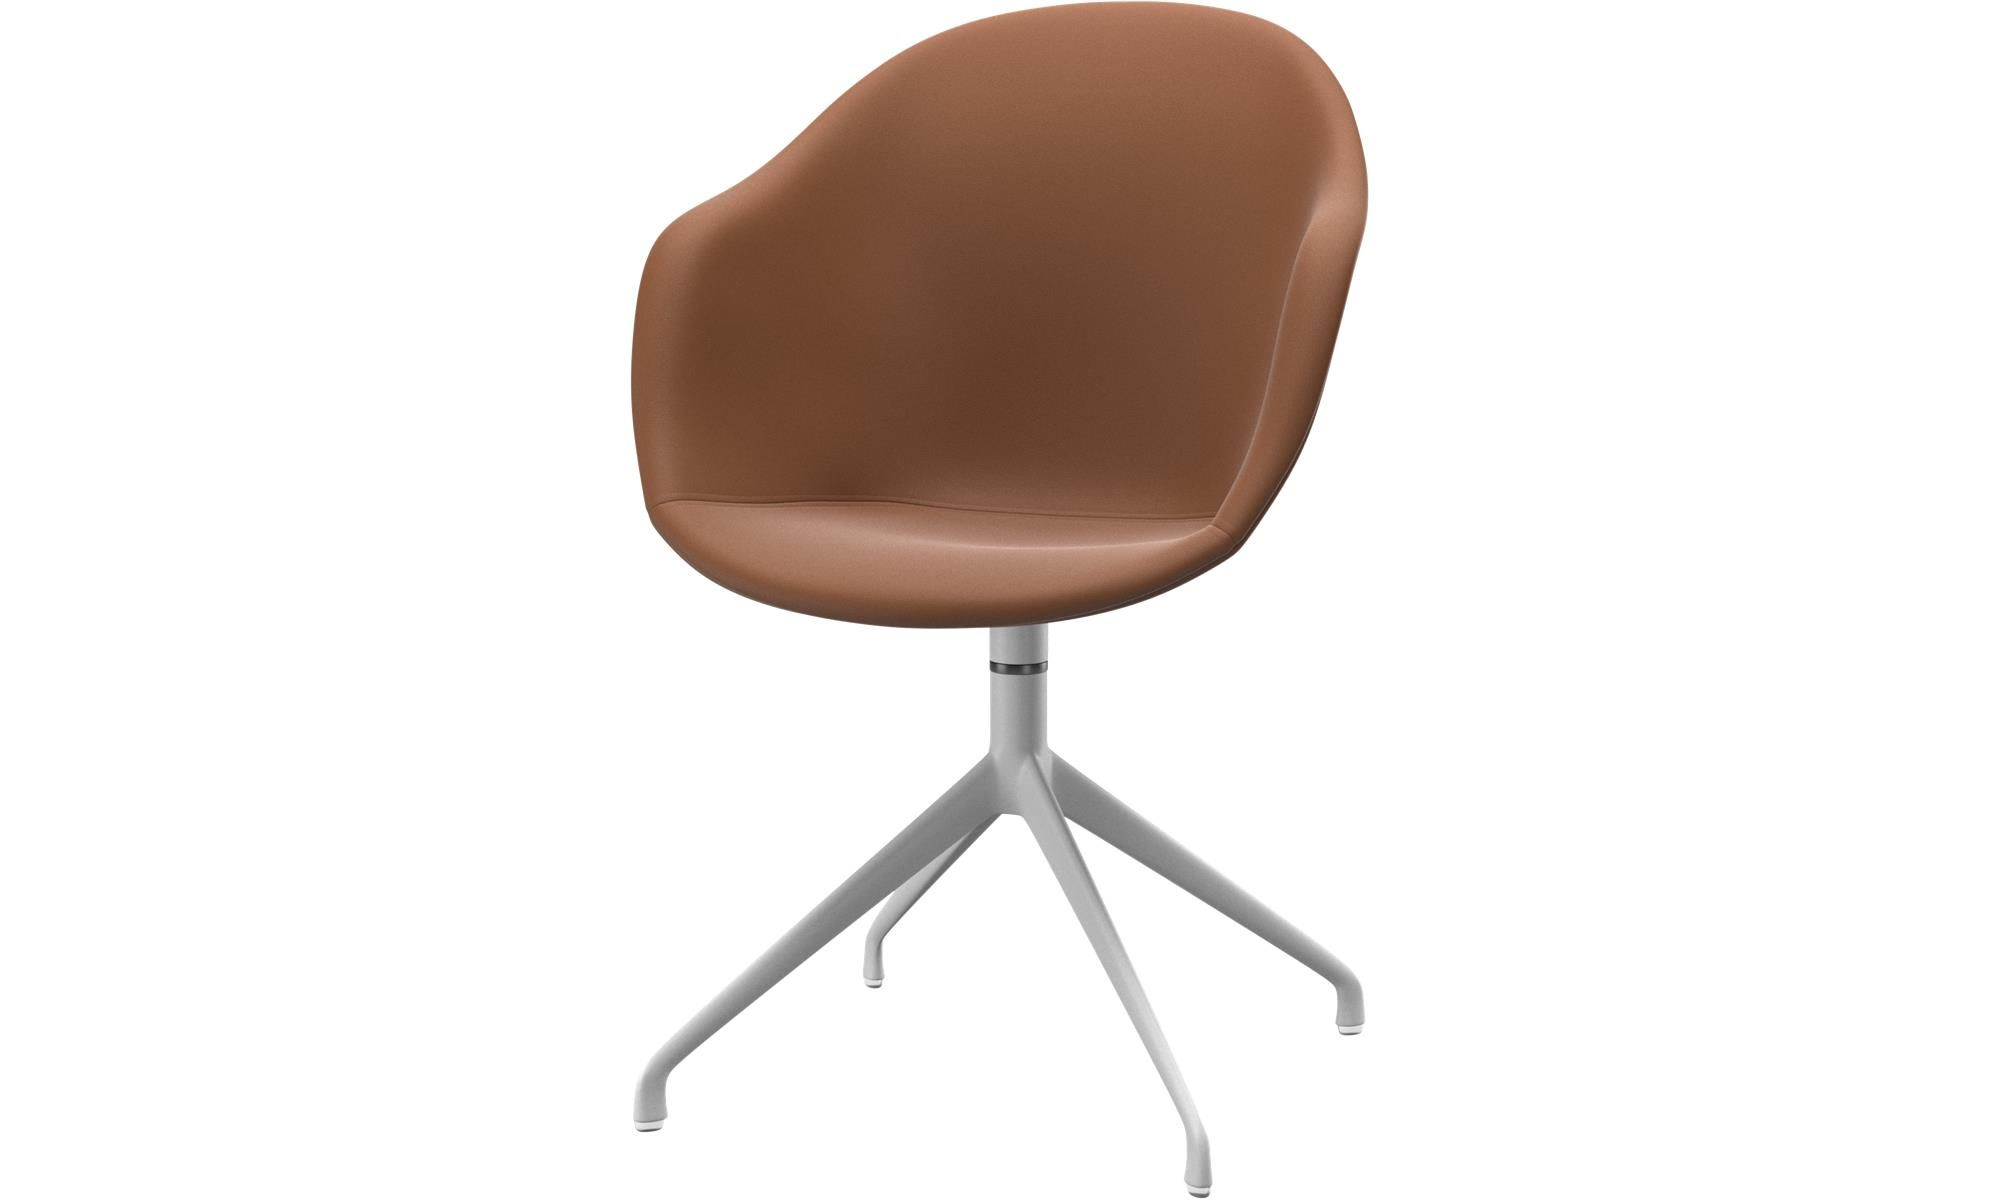 Dining Chairs Adelaide Chair With Swivel Function Brown